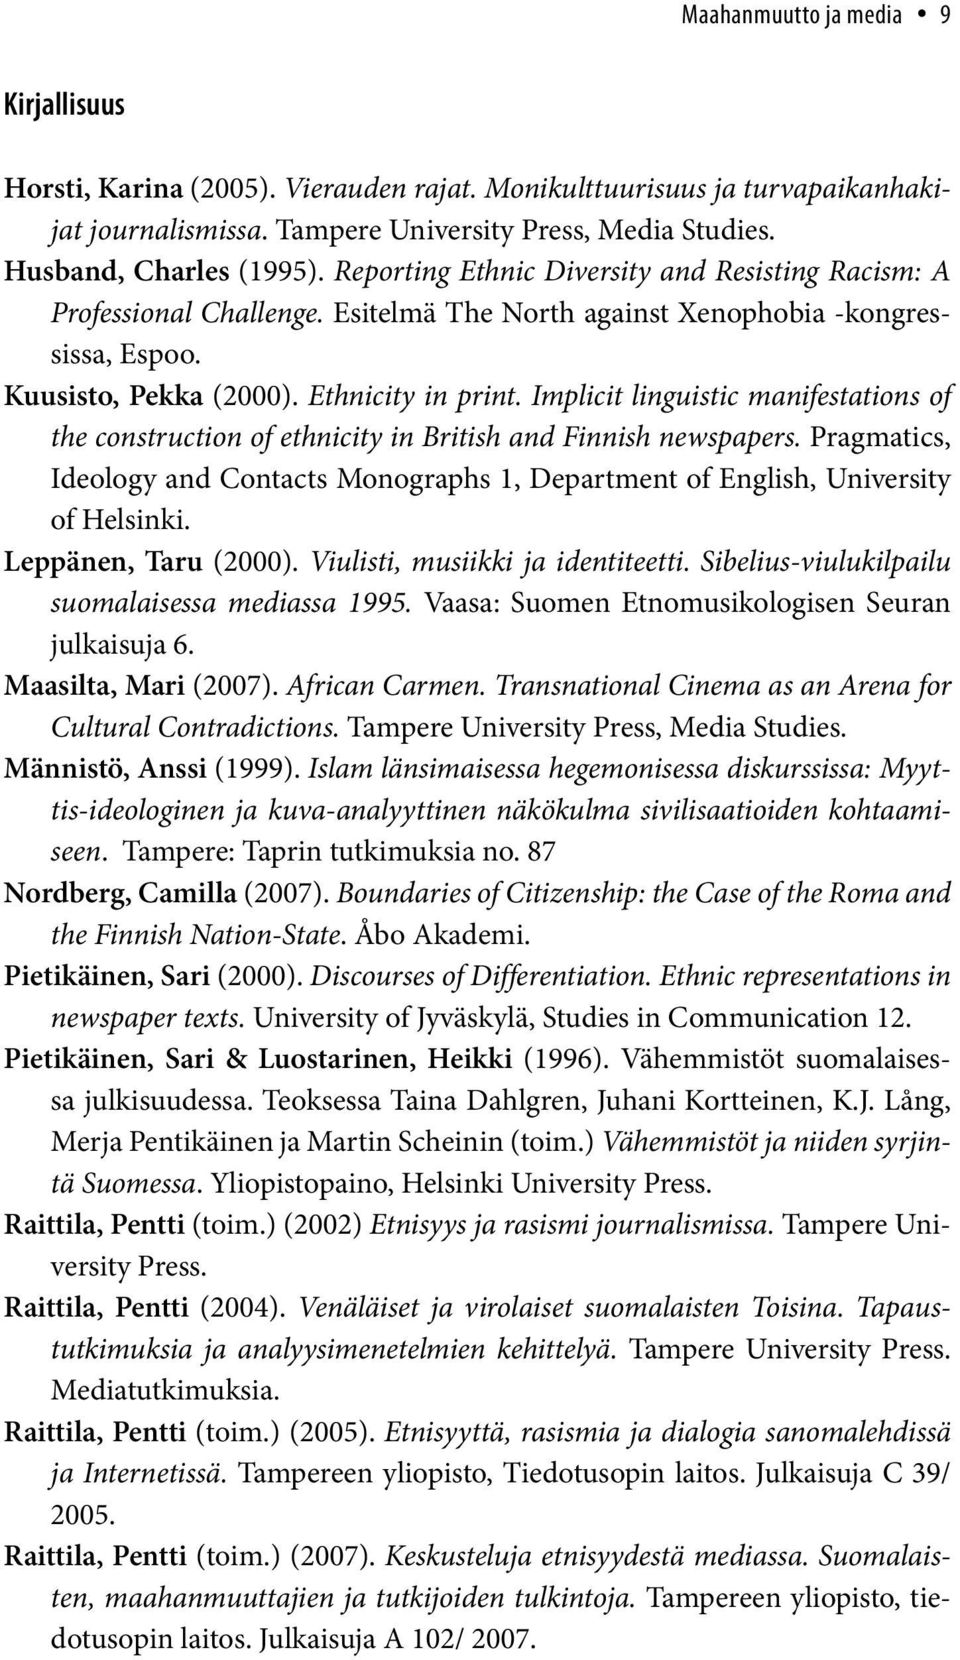 Implicit linguistic manifestations of the construction of ethnicity in British and Finnish newspapers. Pragmatics, Ideology and Contacts Monographs 1, Department of English, University of Helsinki.